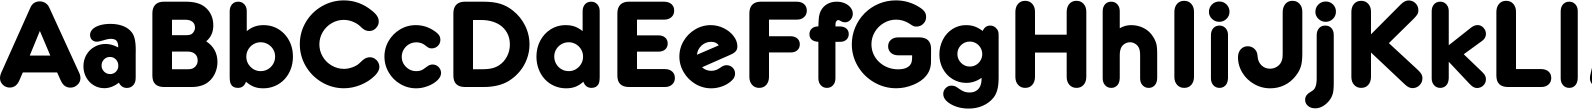 Frankfurter Medium LET Font